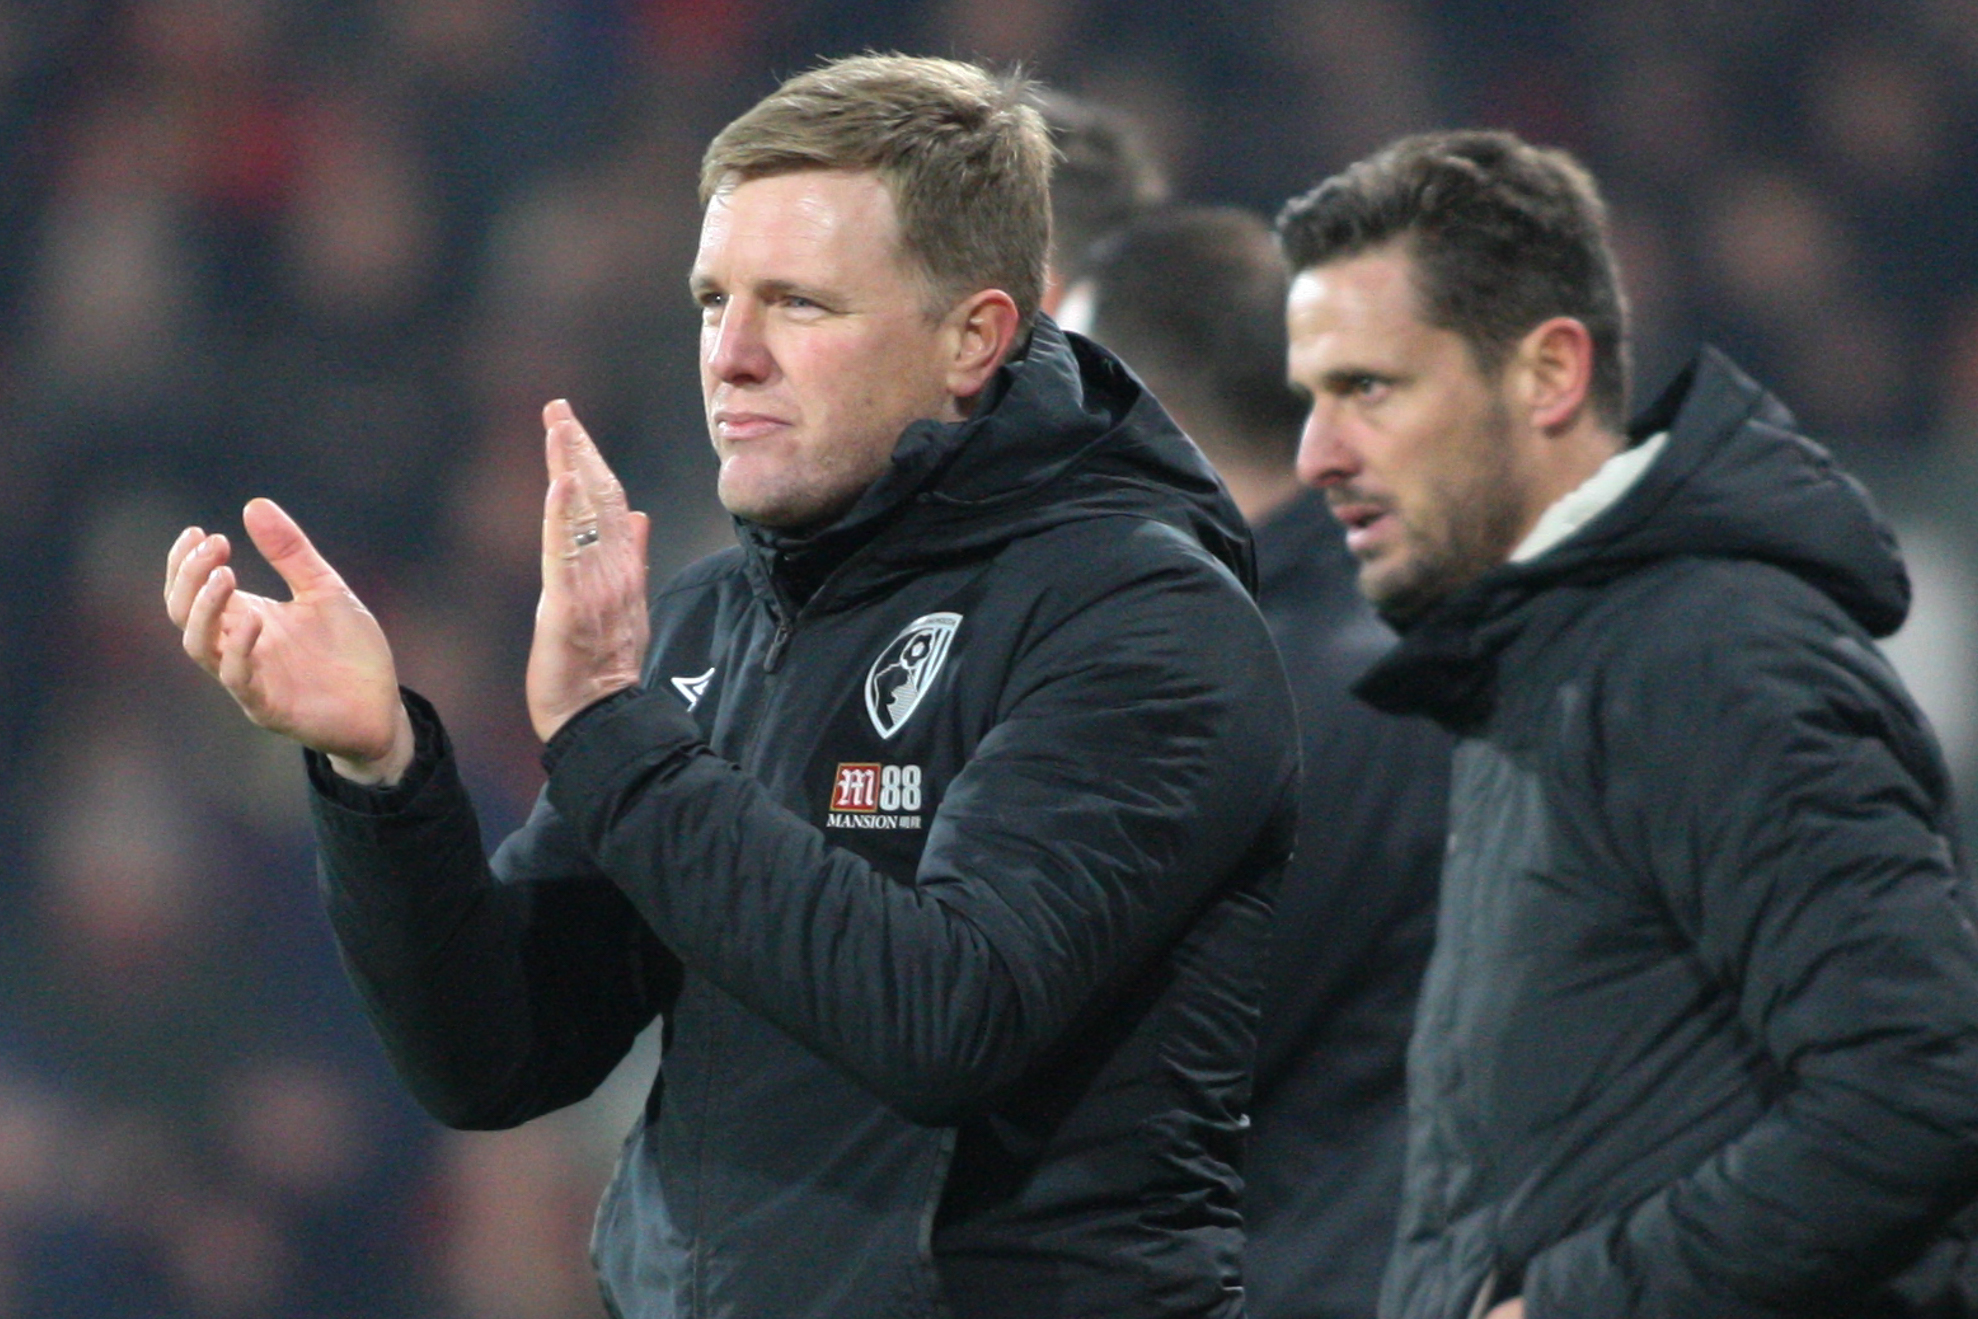 'We really want to kick on from this point' - Eddie Howe urges AFC Bournemouth to build on Brighton win